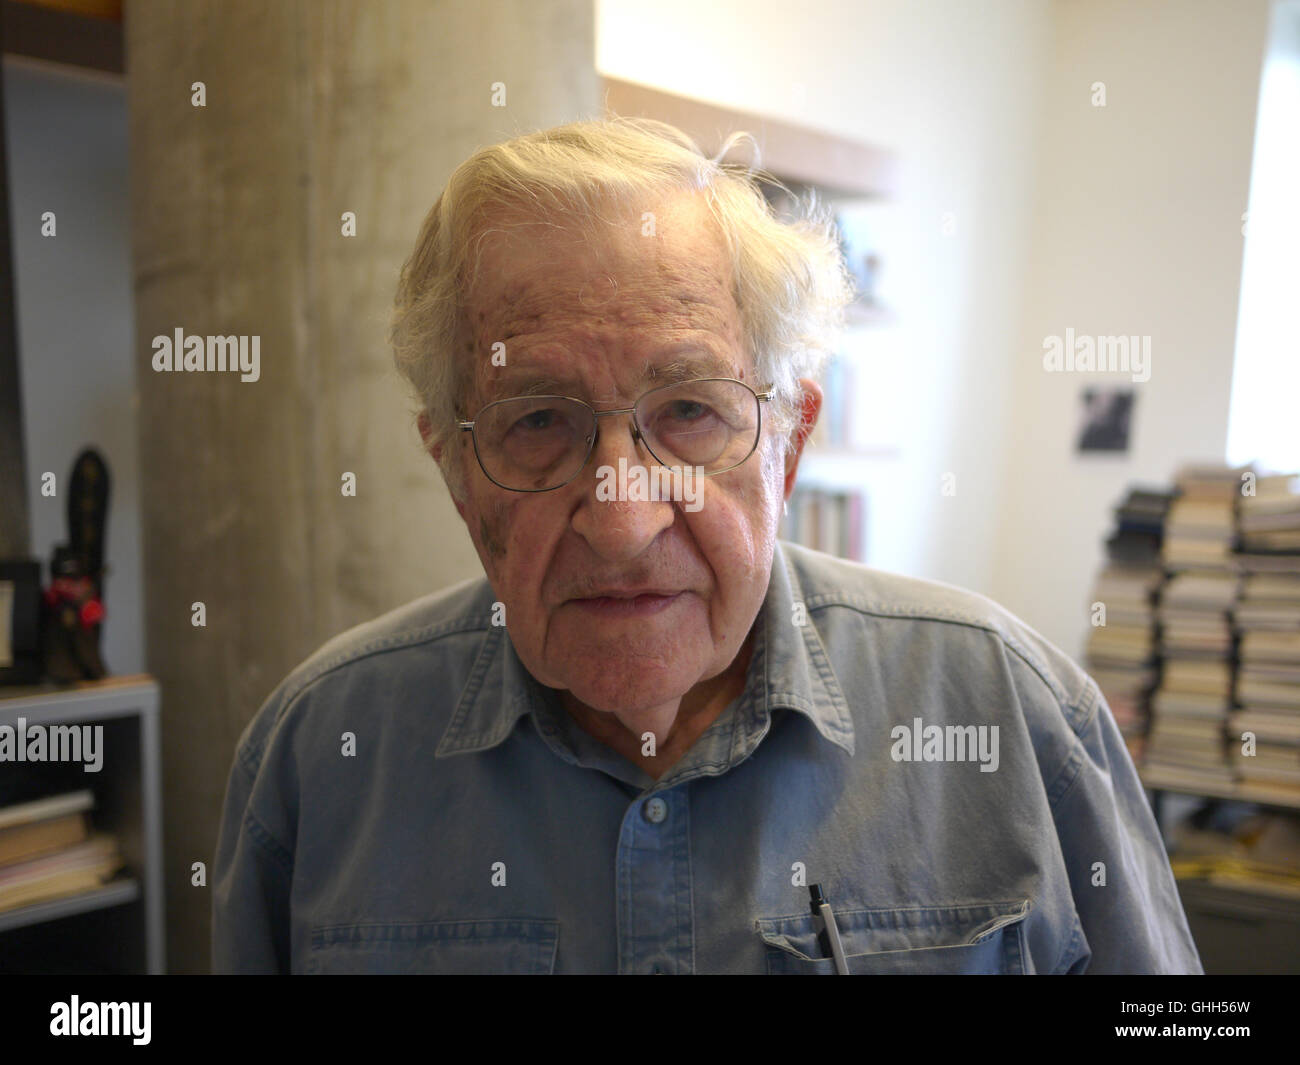 Cambridge, US. 9th Sep, 2016. Philosopher and linguist Noam Chomsky standing in his office at the Massachusetts - Stock Image